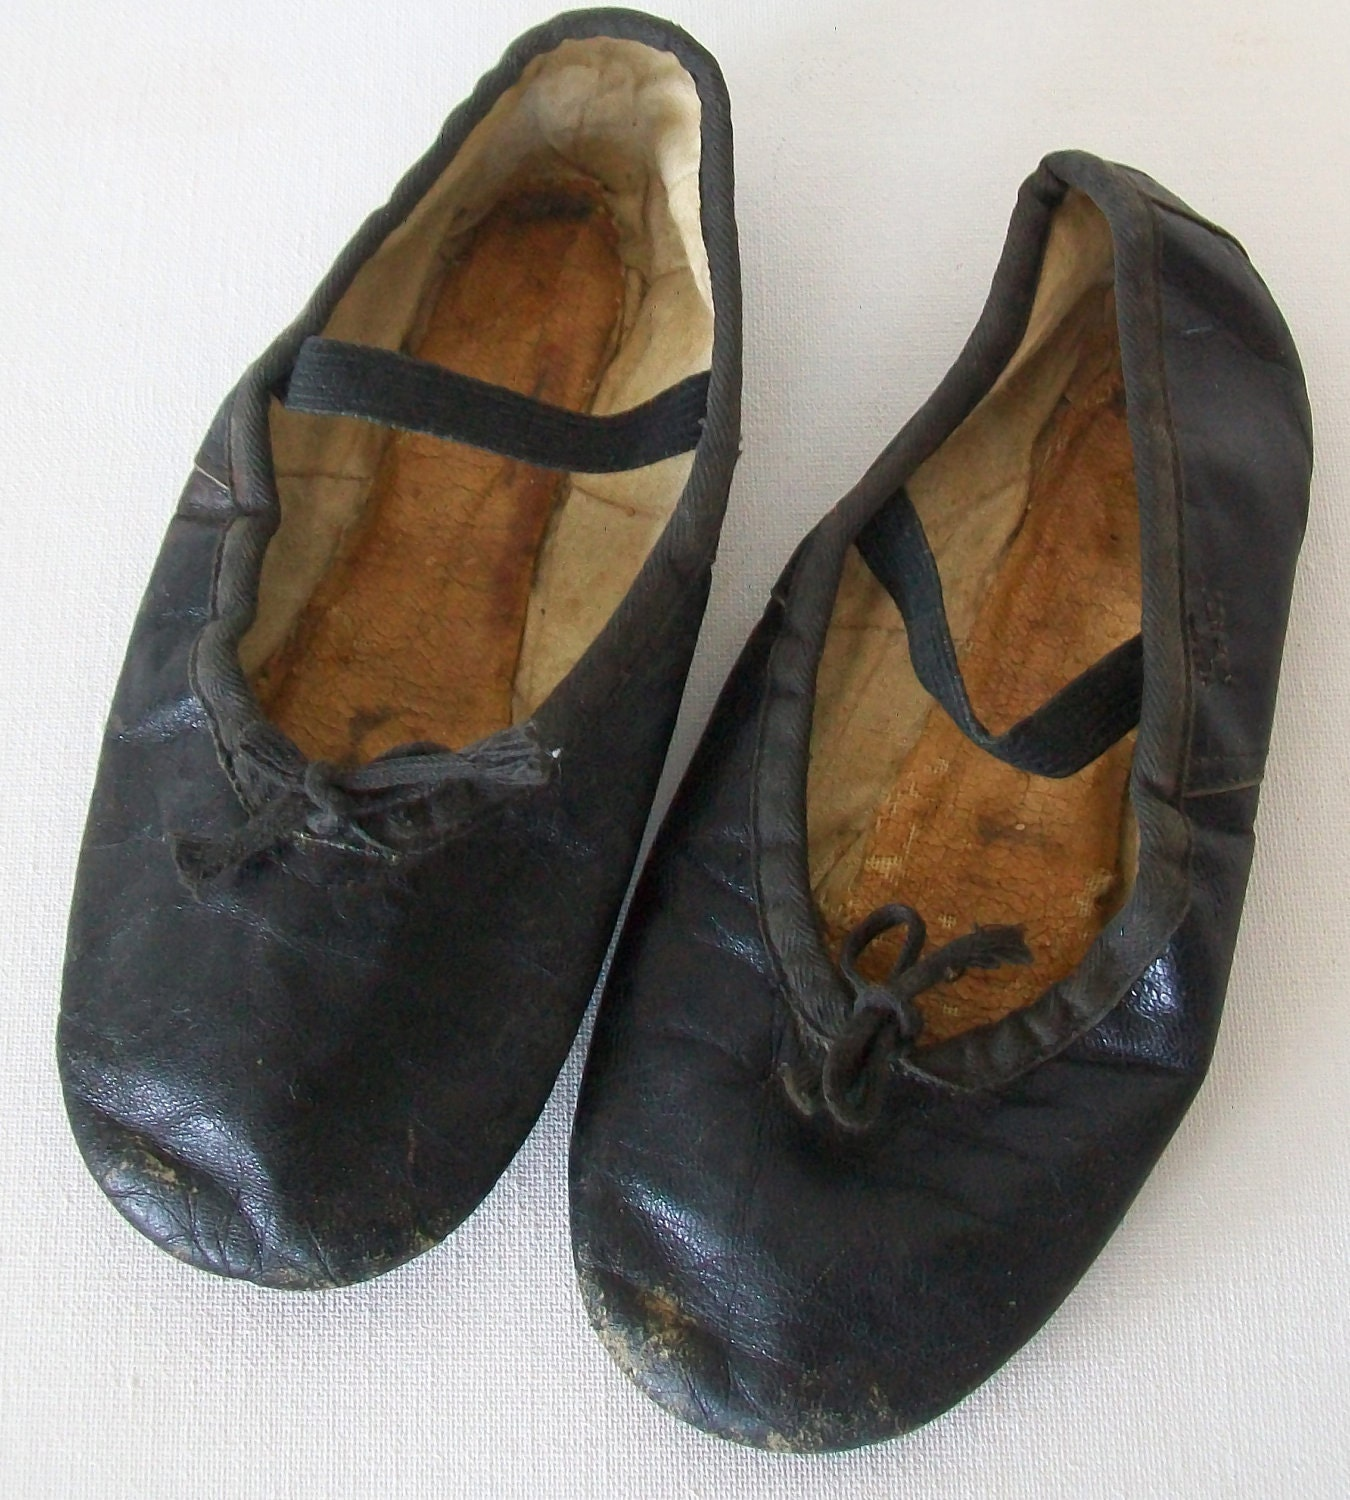 1950 vintage ballet shoes worn out child size by find4you